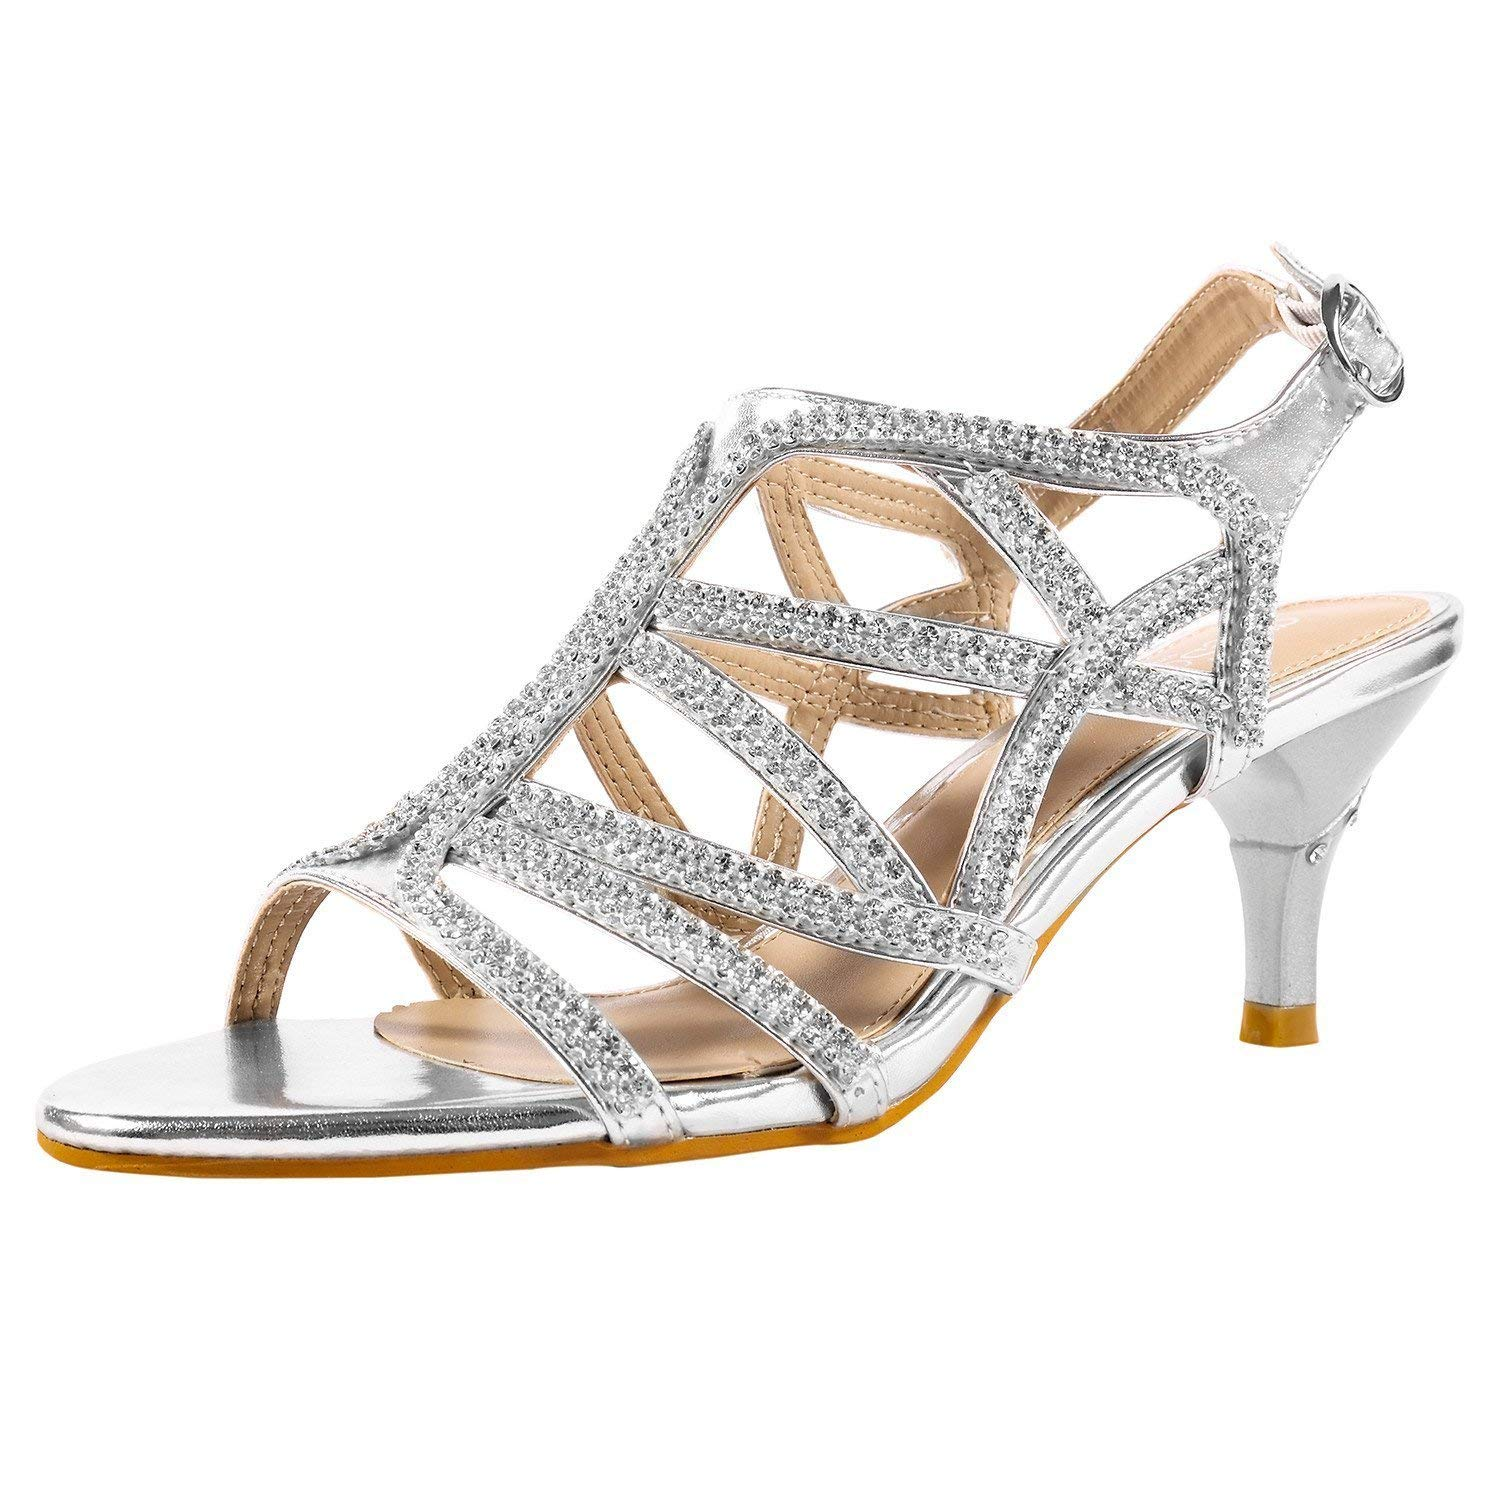 Cheap Silver Strappy Sandals Wedding Find Silver Strappy